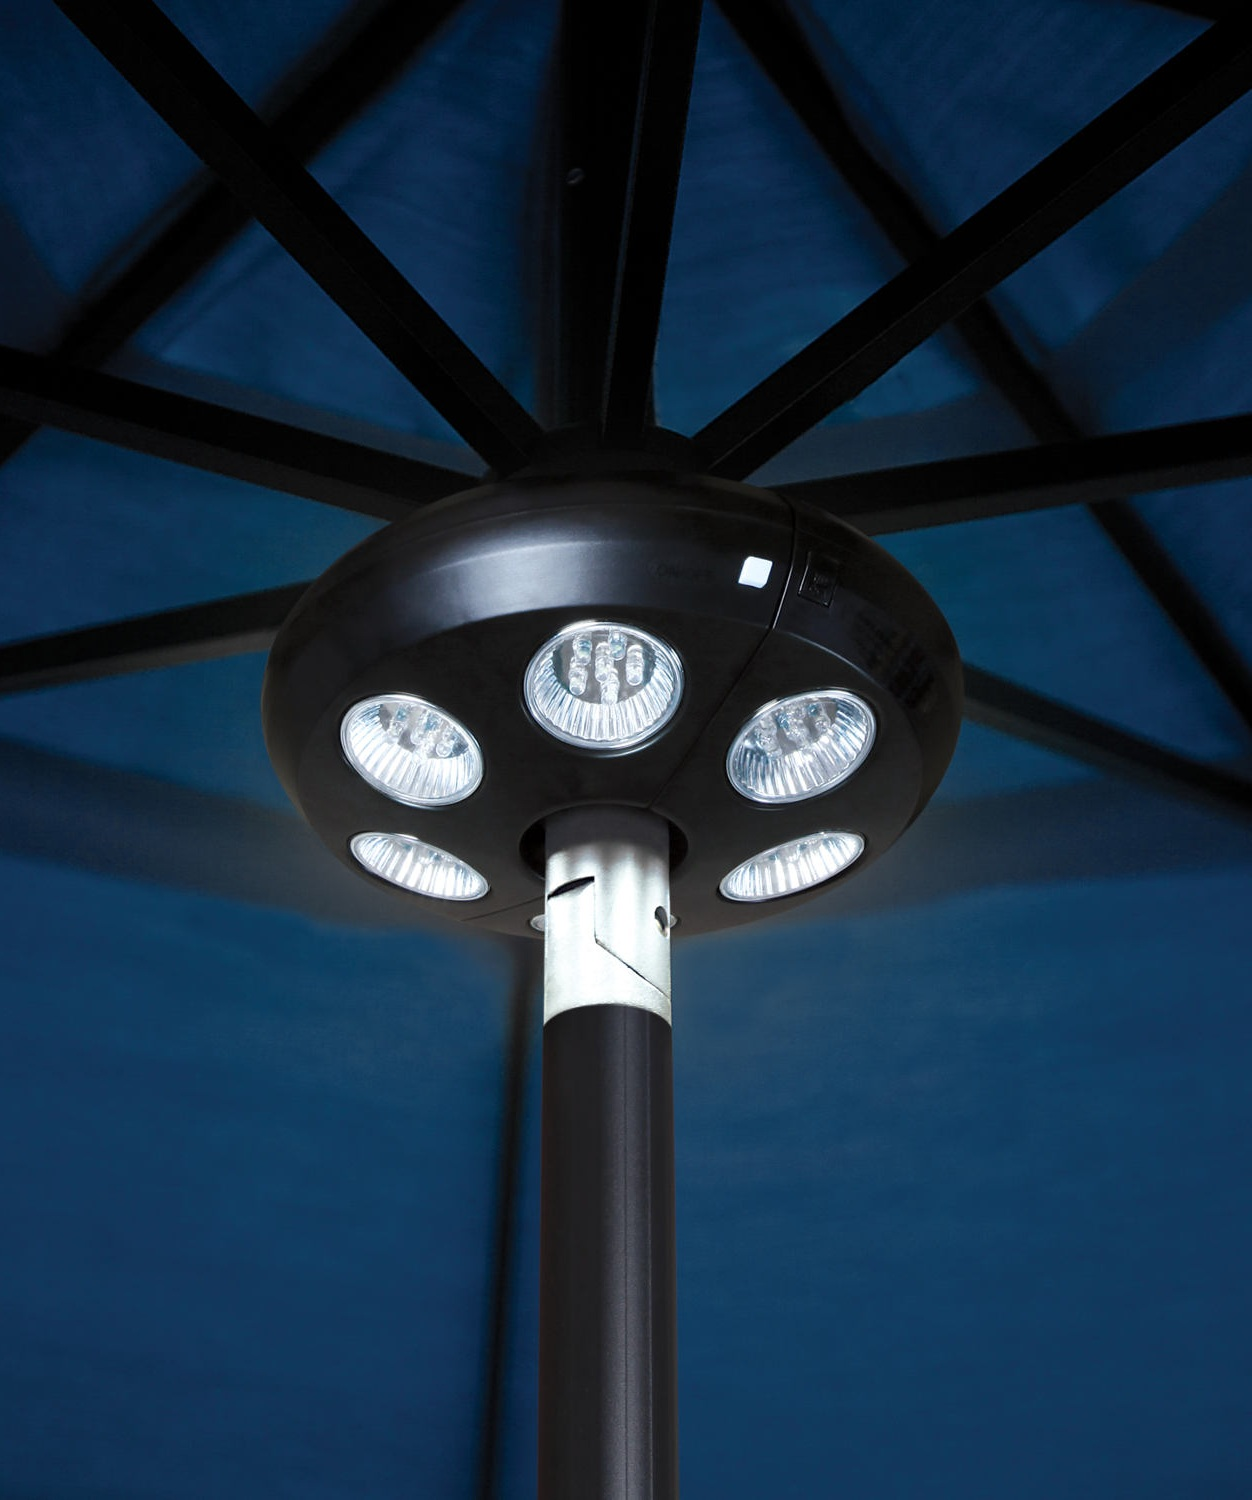 The Vega L - Umbrella Light